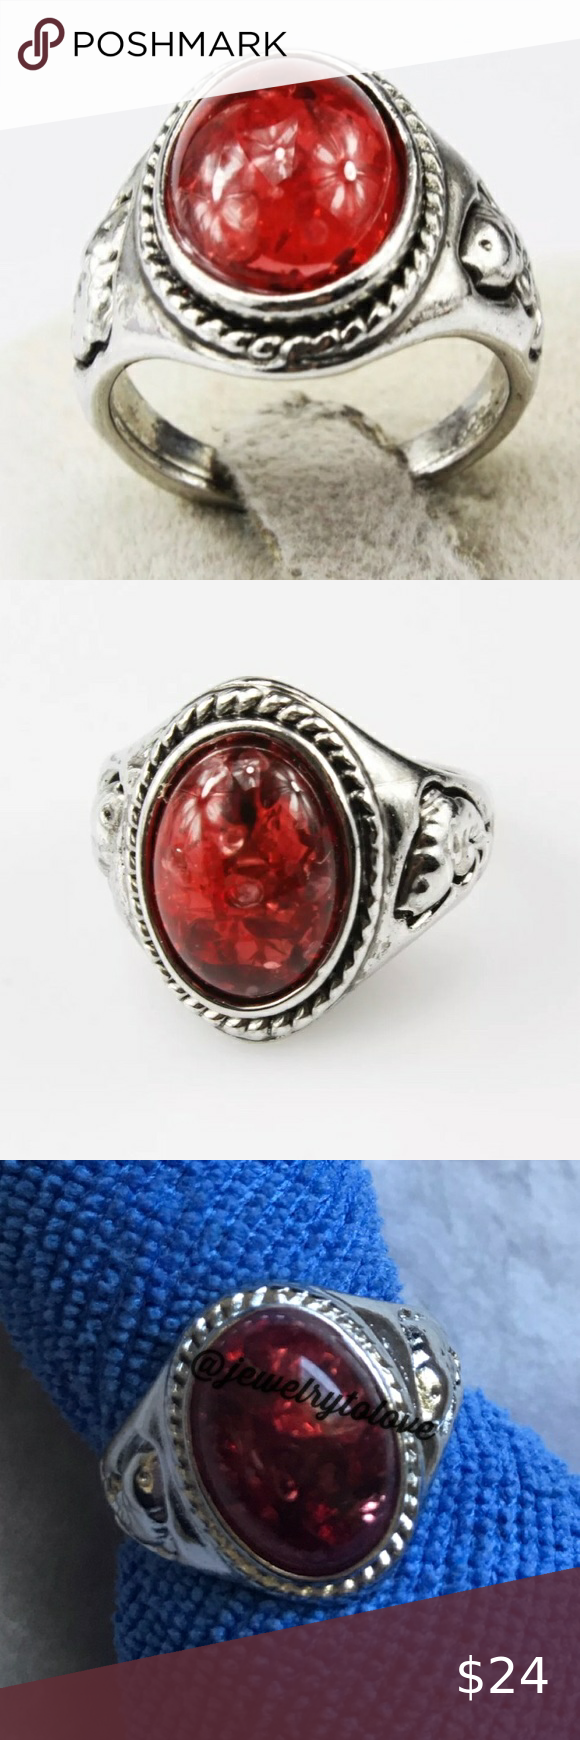 Check out this listing I just found on Poshmark: 😘 4/$25 Silver Tone Red Pieces Fish Ring. #shopmycloset #poshmark #shopping #style #pinitforlater #@inspiredaily #Jewelry